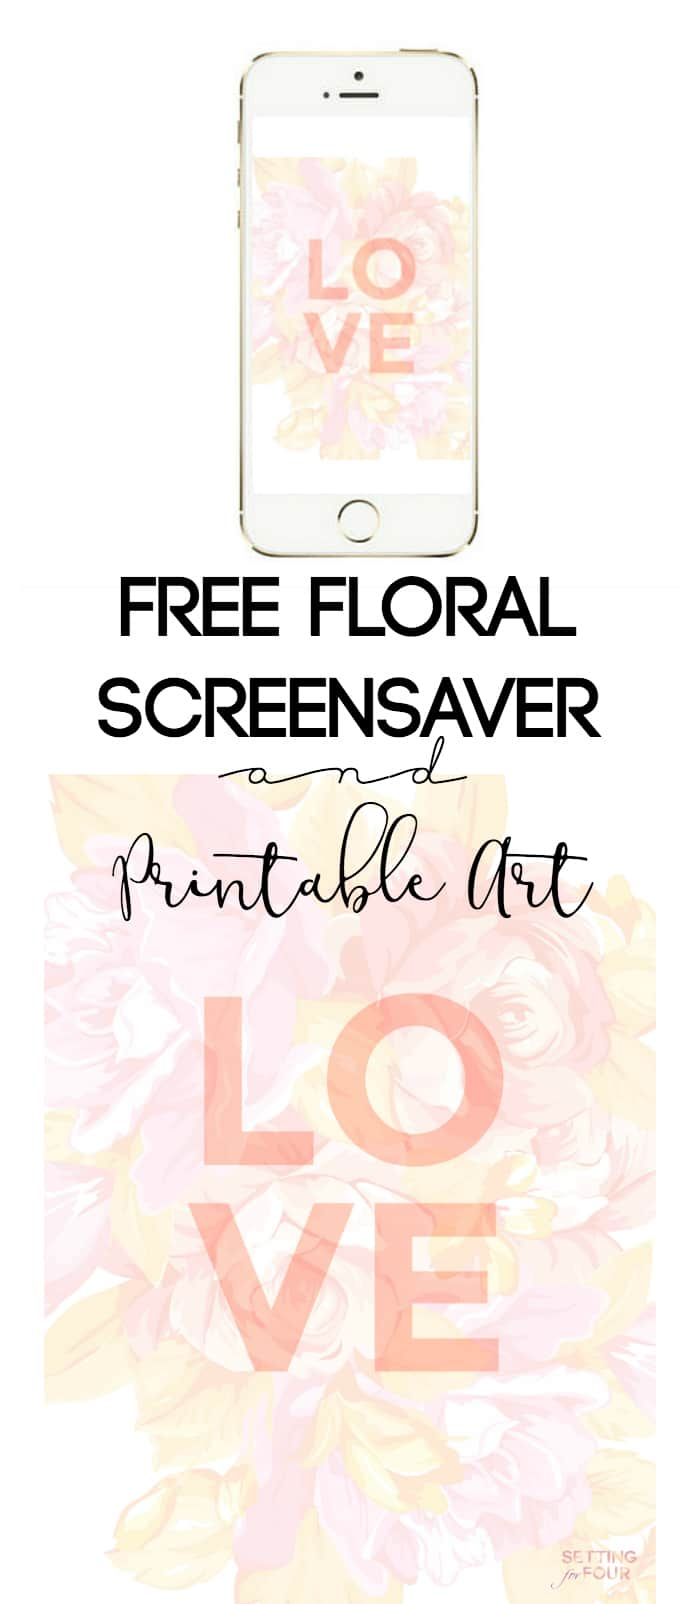 Get your FREE Floral iPhone, iPad Wallpaper and Printable Art Download! This beautiful floral graphic is perfect to frame for a gallery wall or make it your iPhone and iPad screensaver! Makes a great wedding, shower, baby nursery and Valentine's Day idea too!